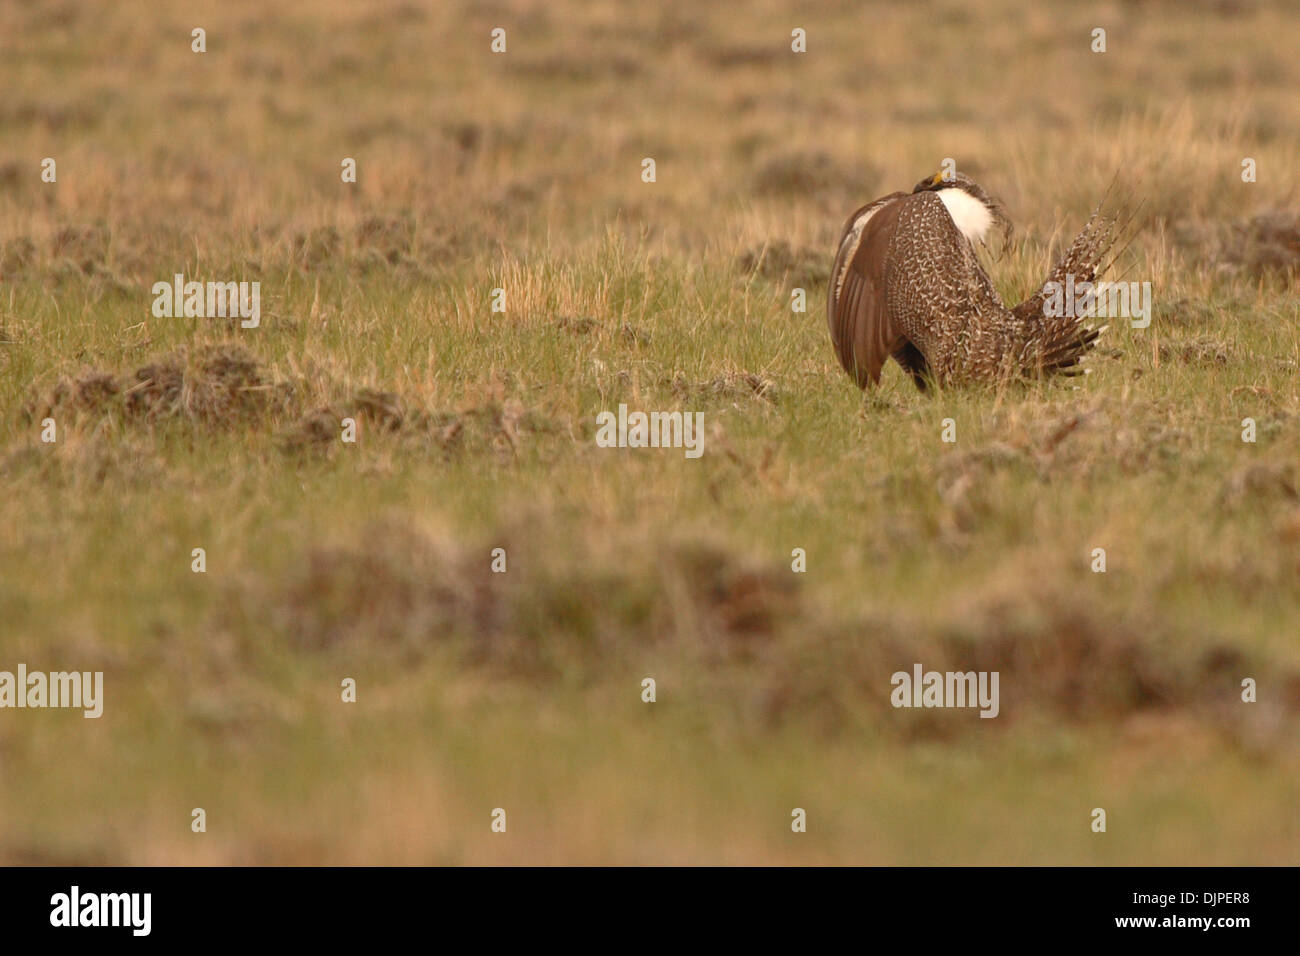 A Sage Grouse preparing to let out a boom on lekking grounds during courtship. - Stock Image